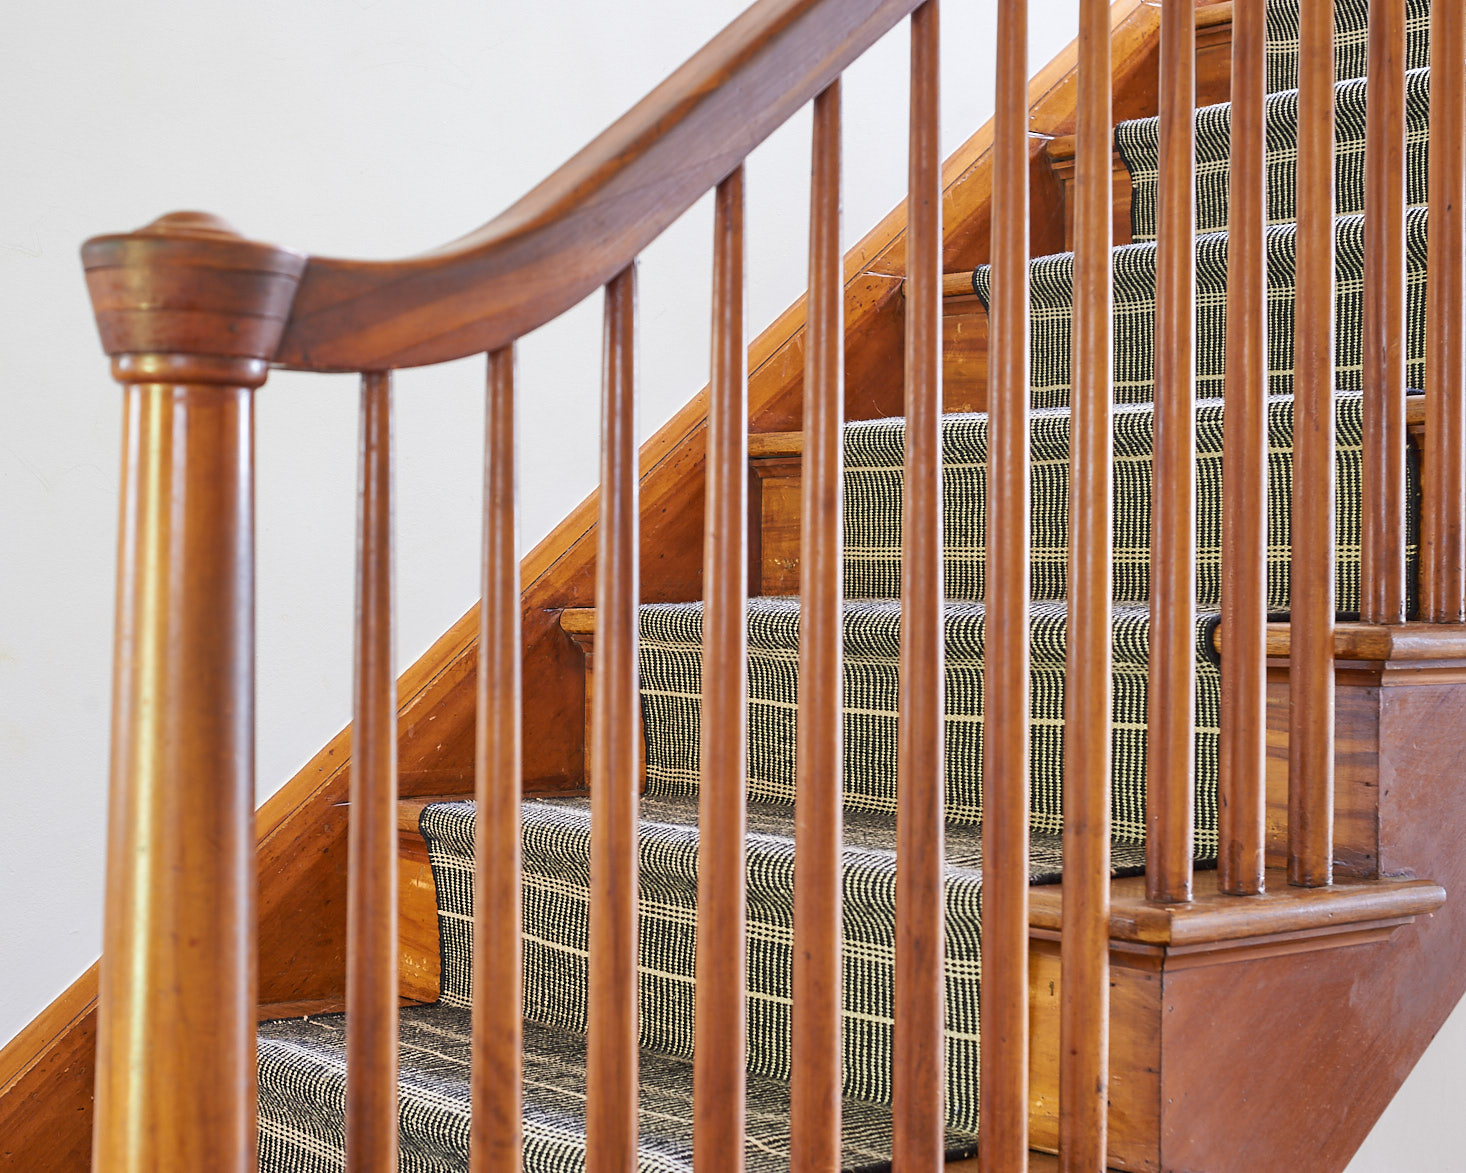 Detail of stair runner through spindles